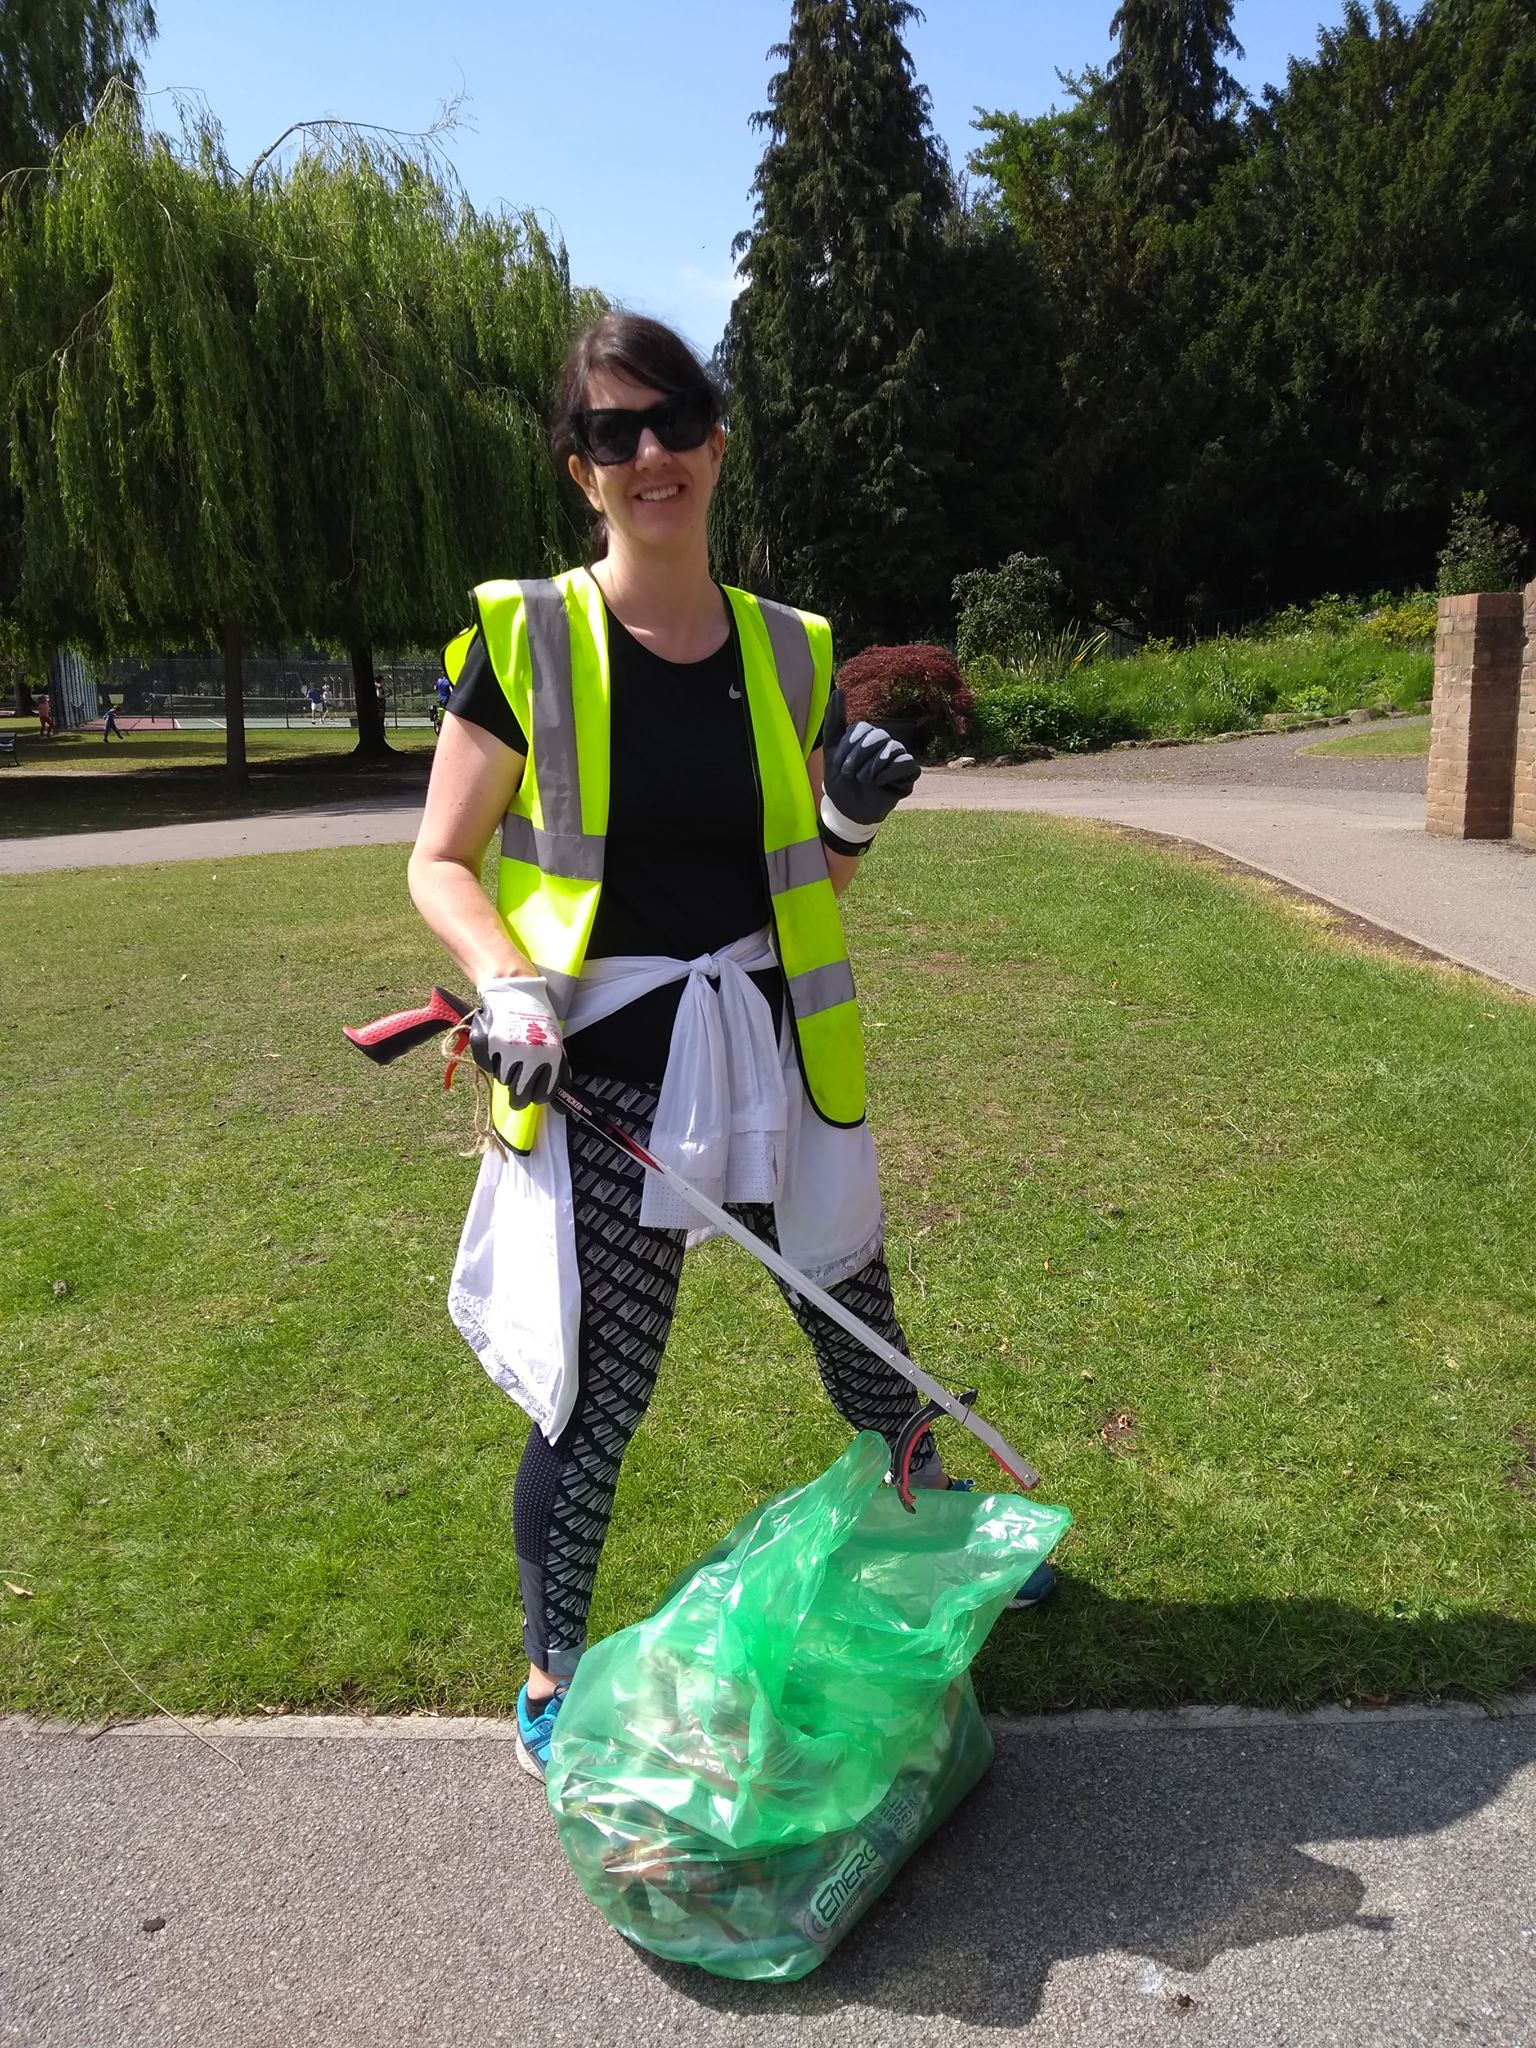 Litter Picking Rowntree park